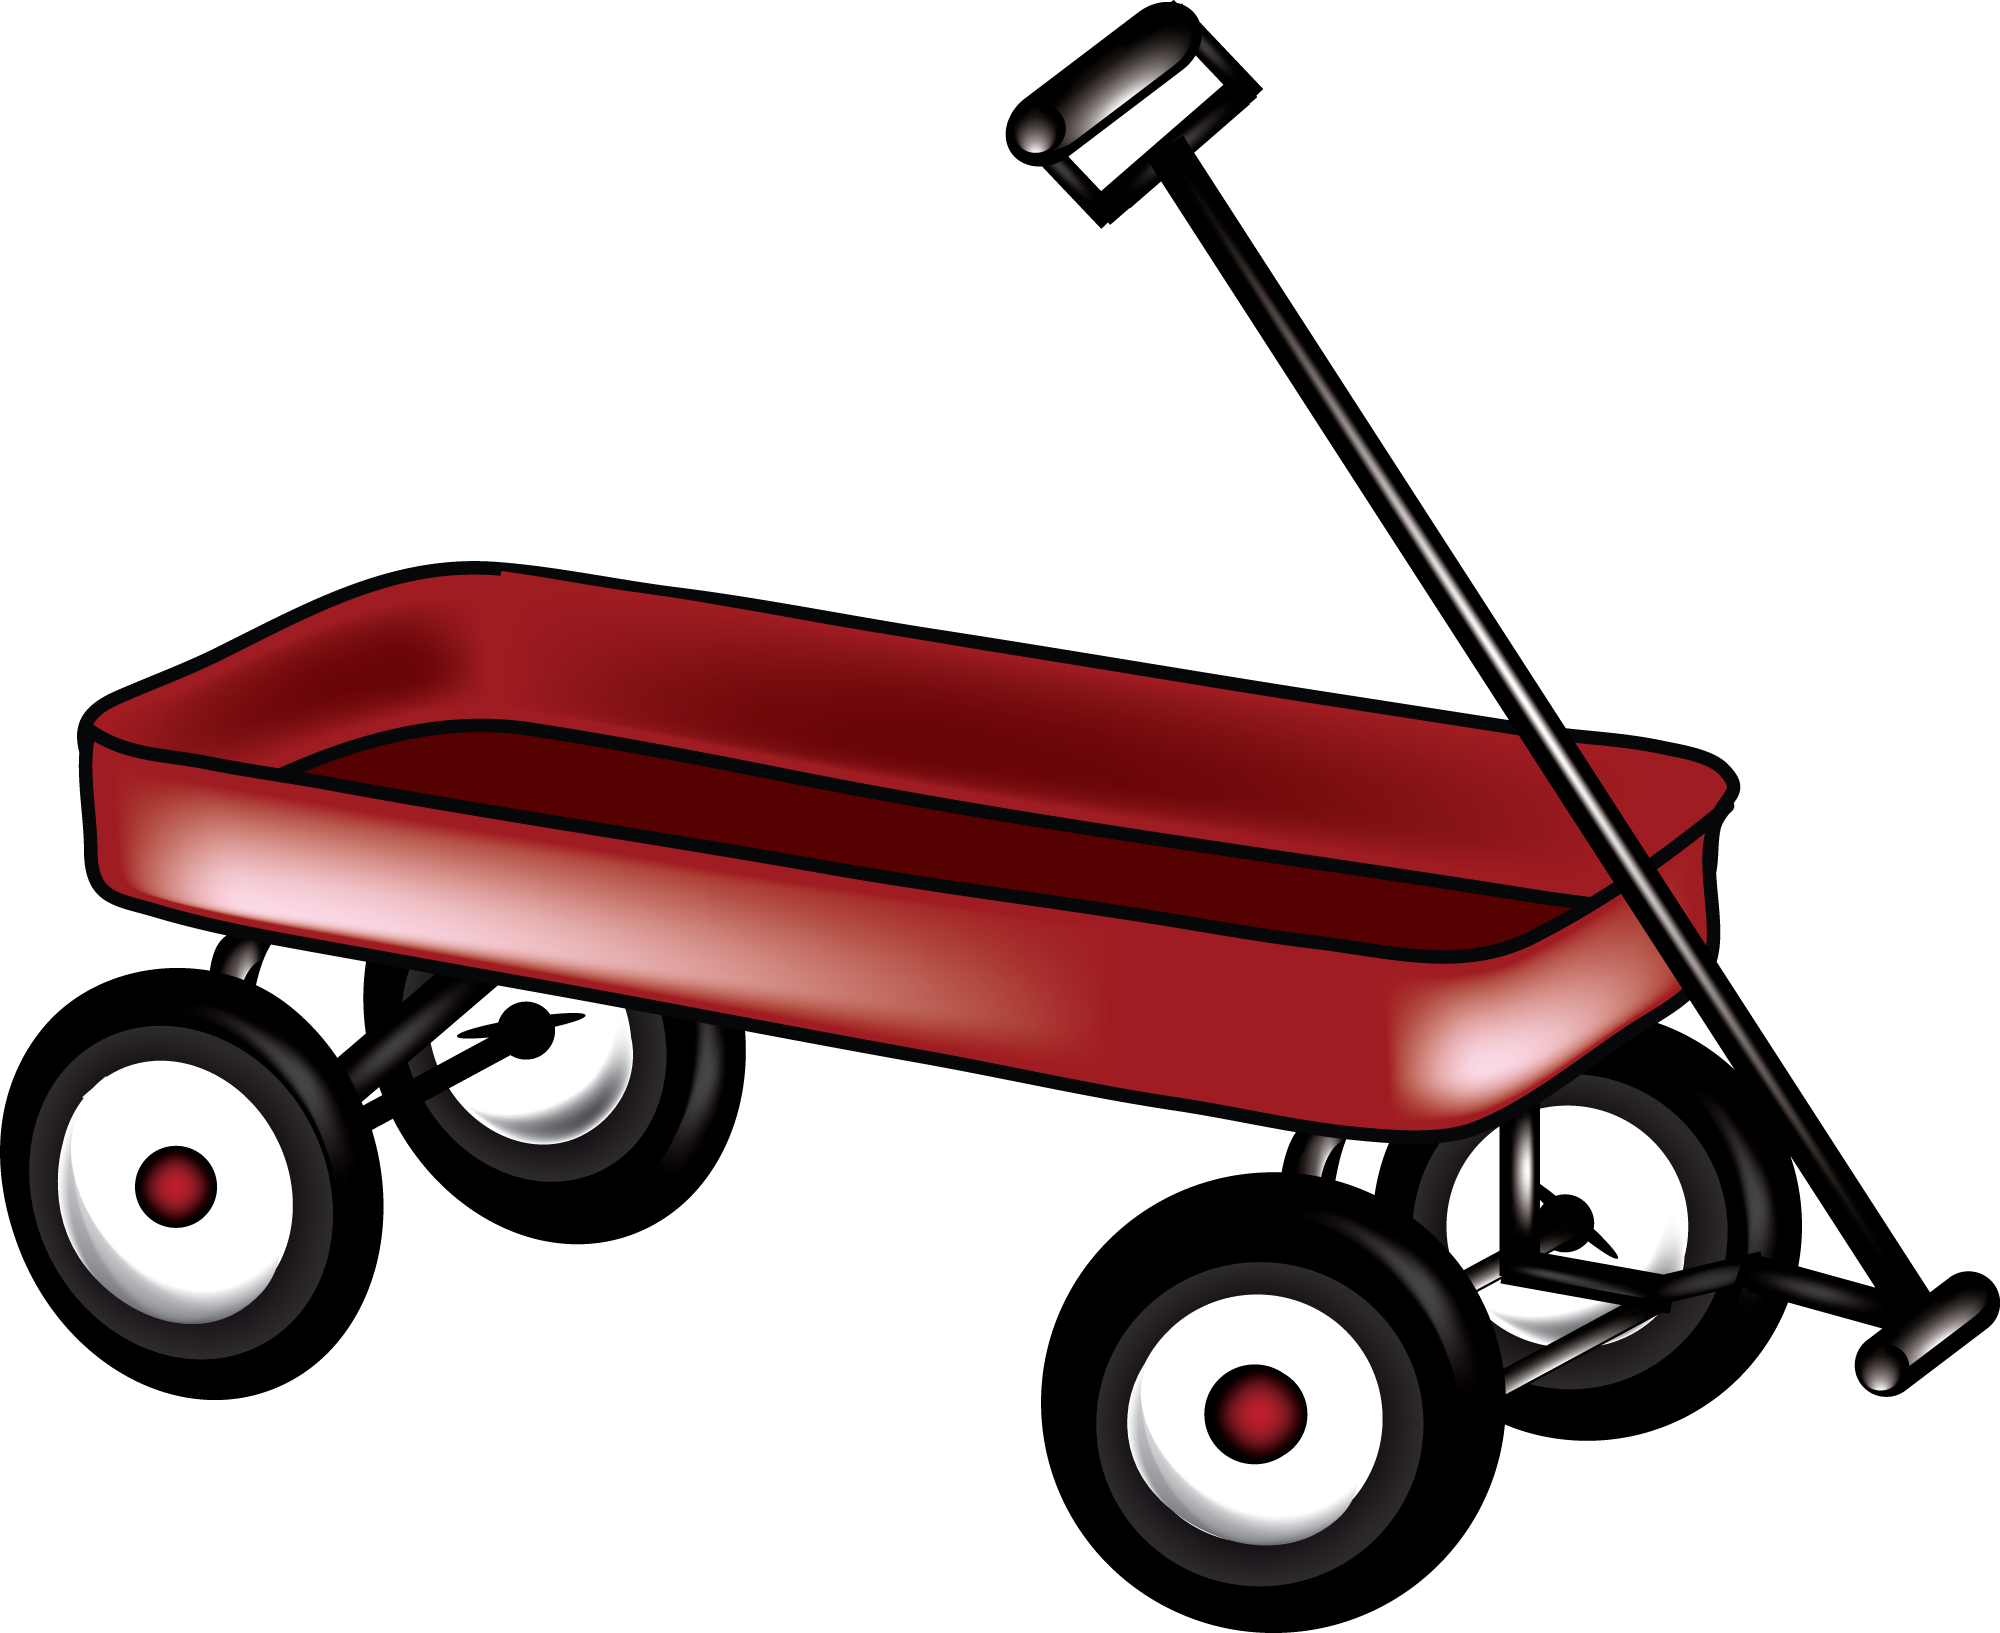 red wagon clipart black and white #5